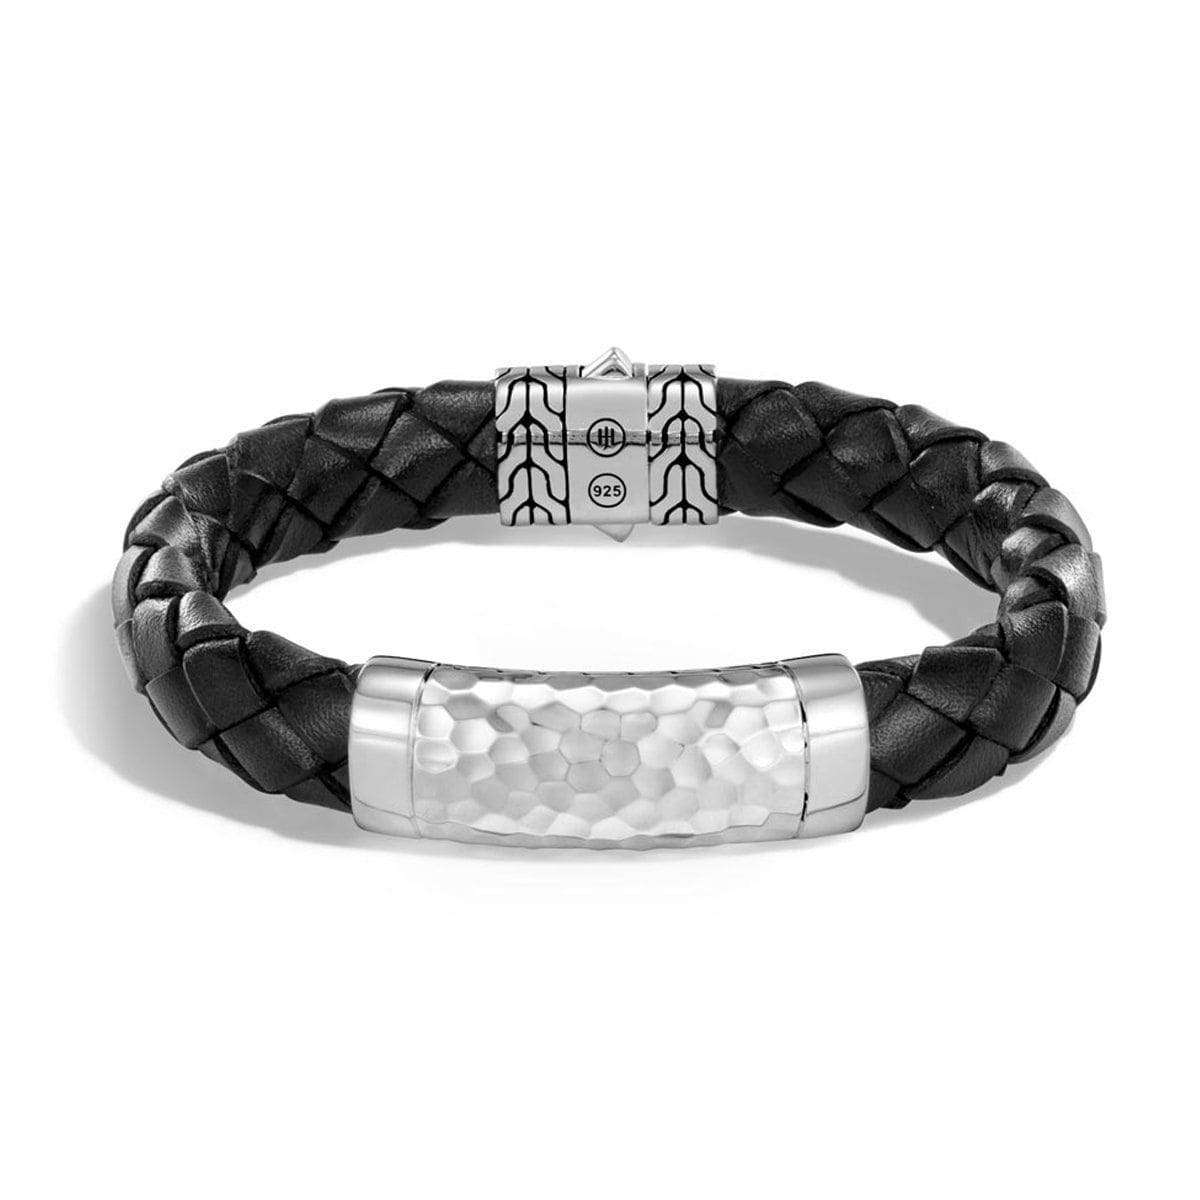 Classic Chain Men's Silver & Leather Bracelet - BM97027BL-John Hardy-Renee Taylor Gallery